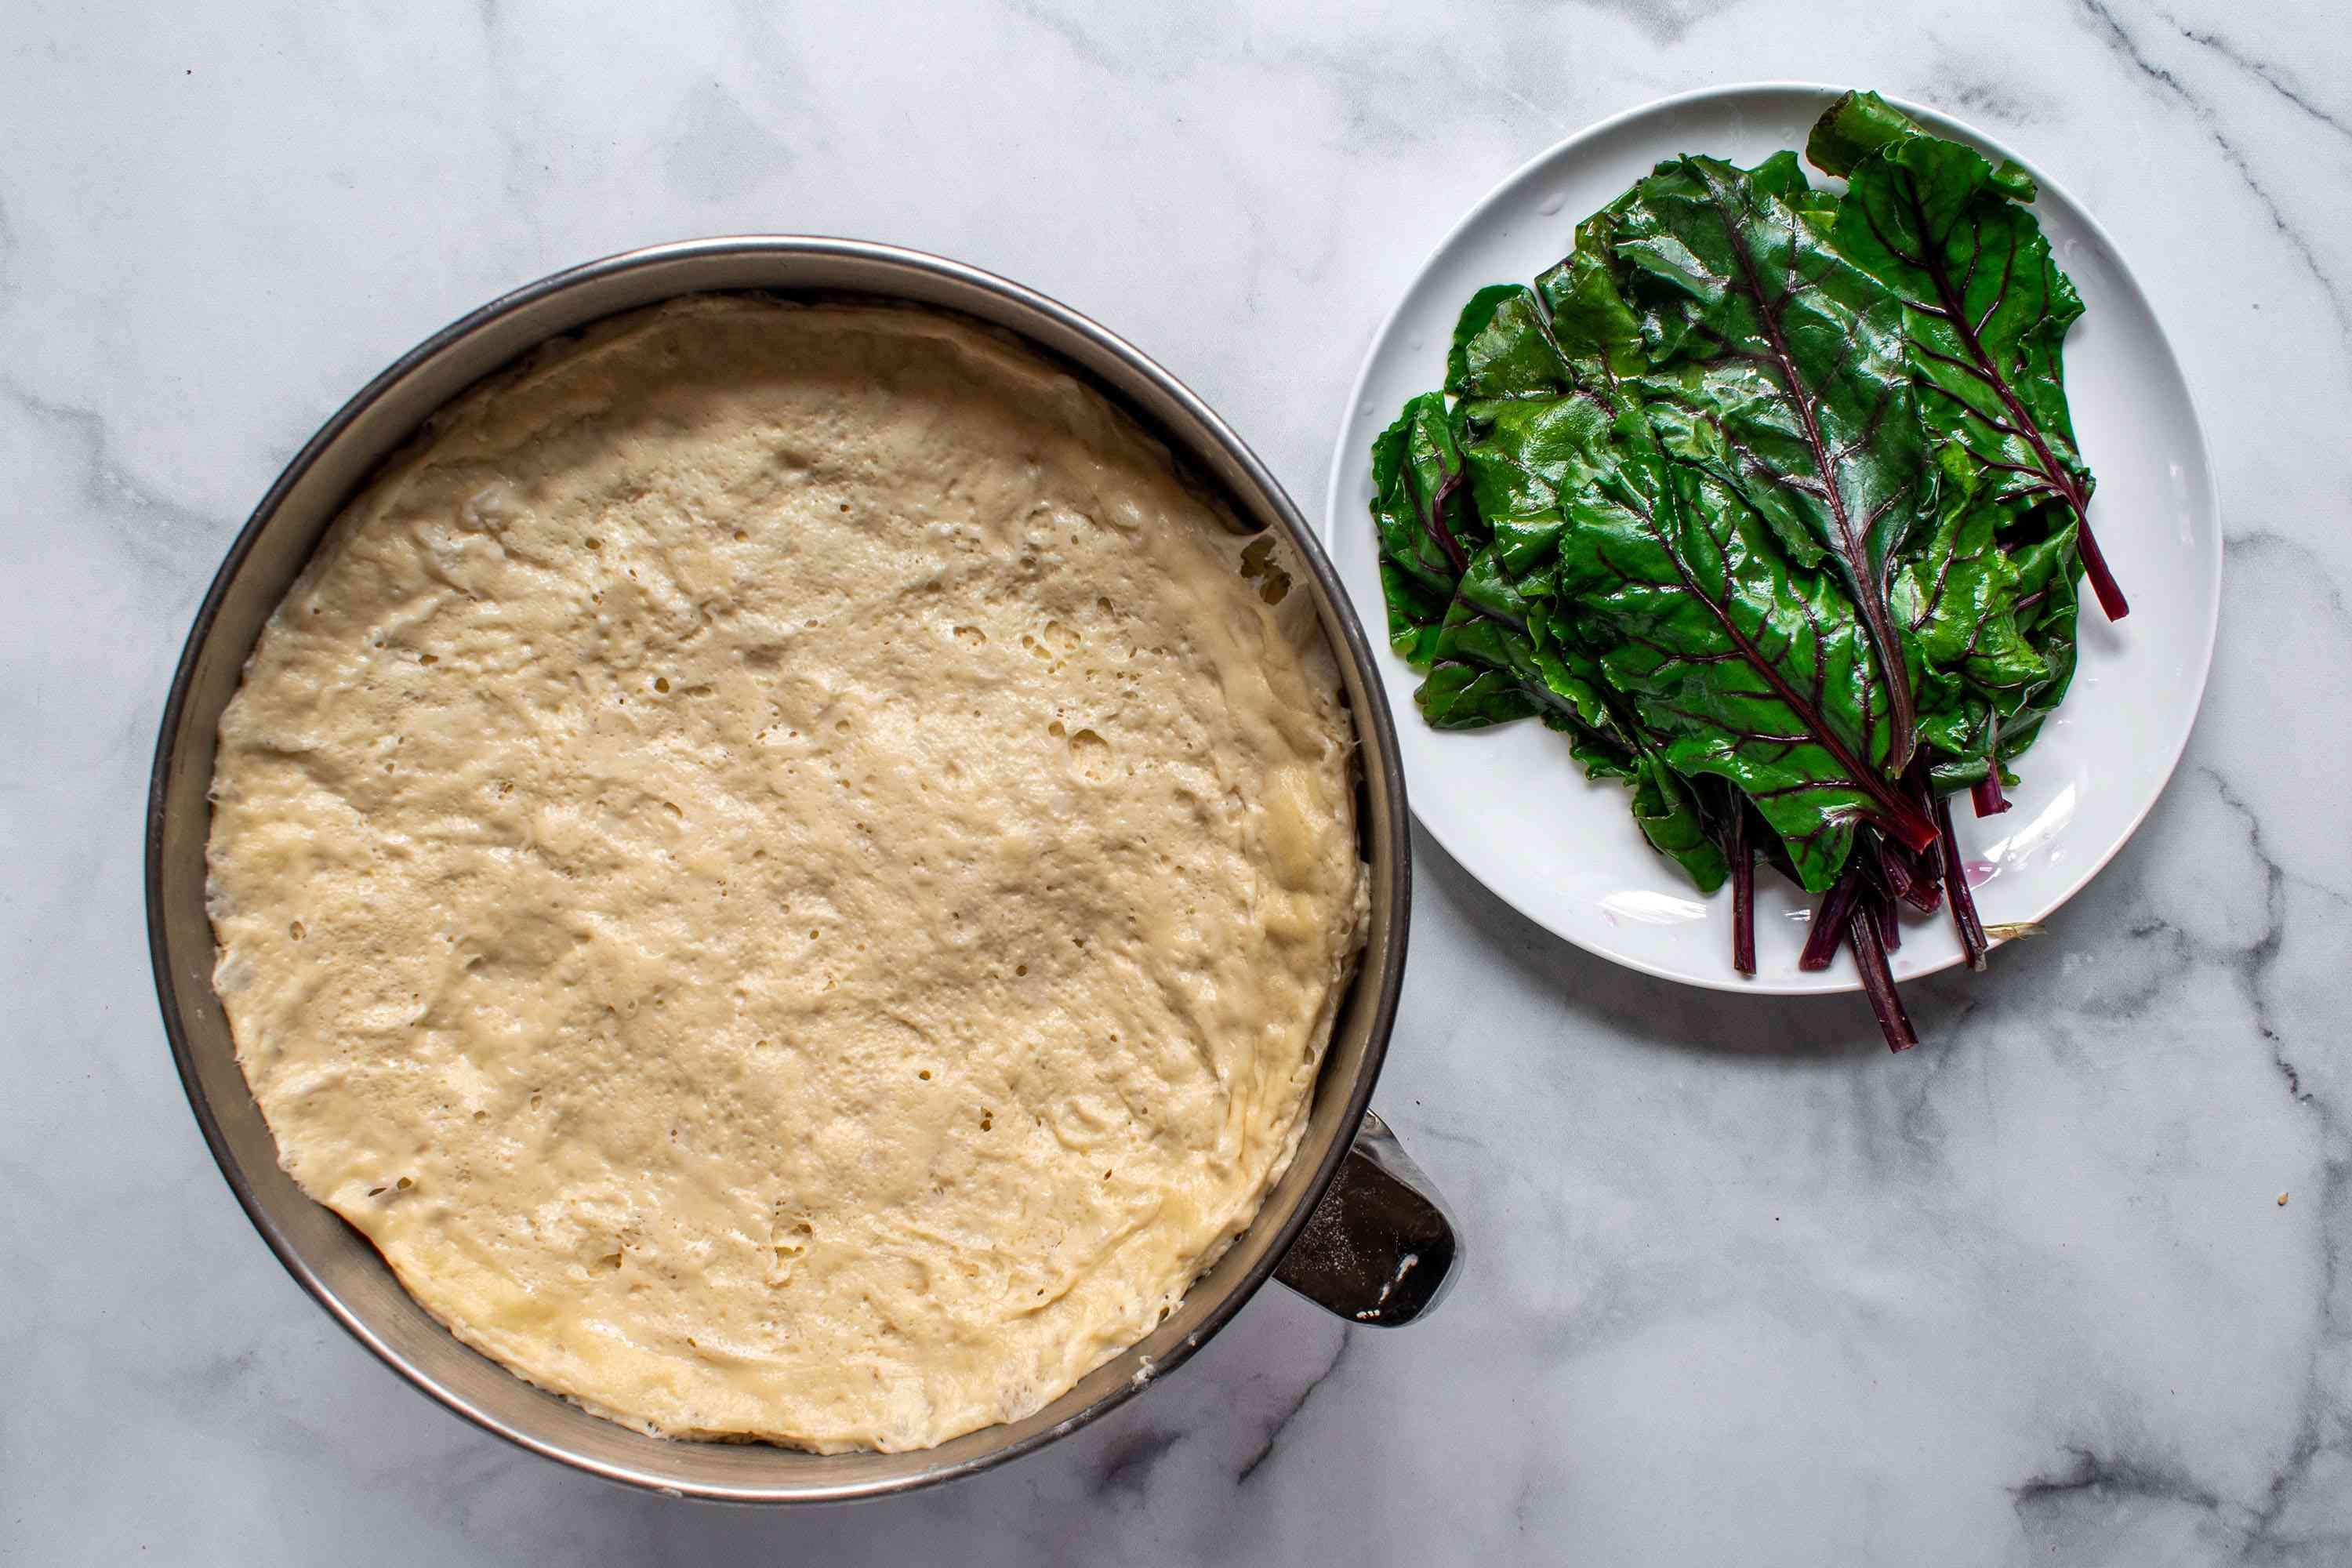 beet leaves and dough